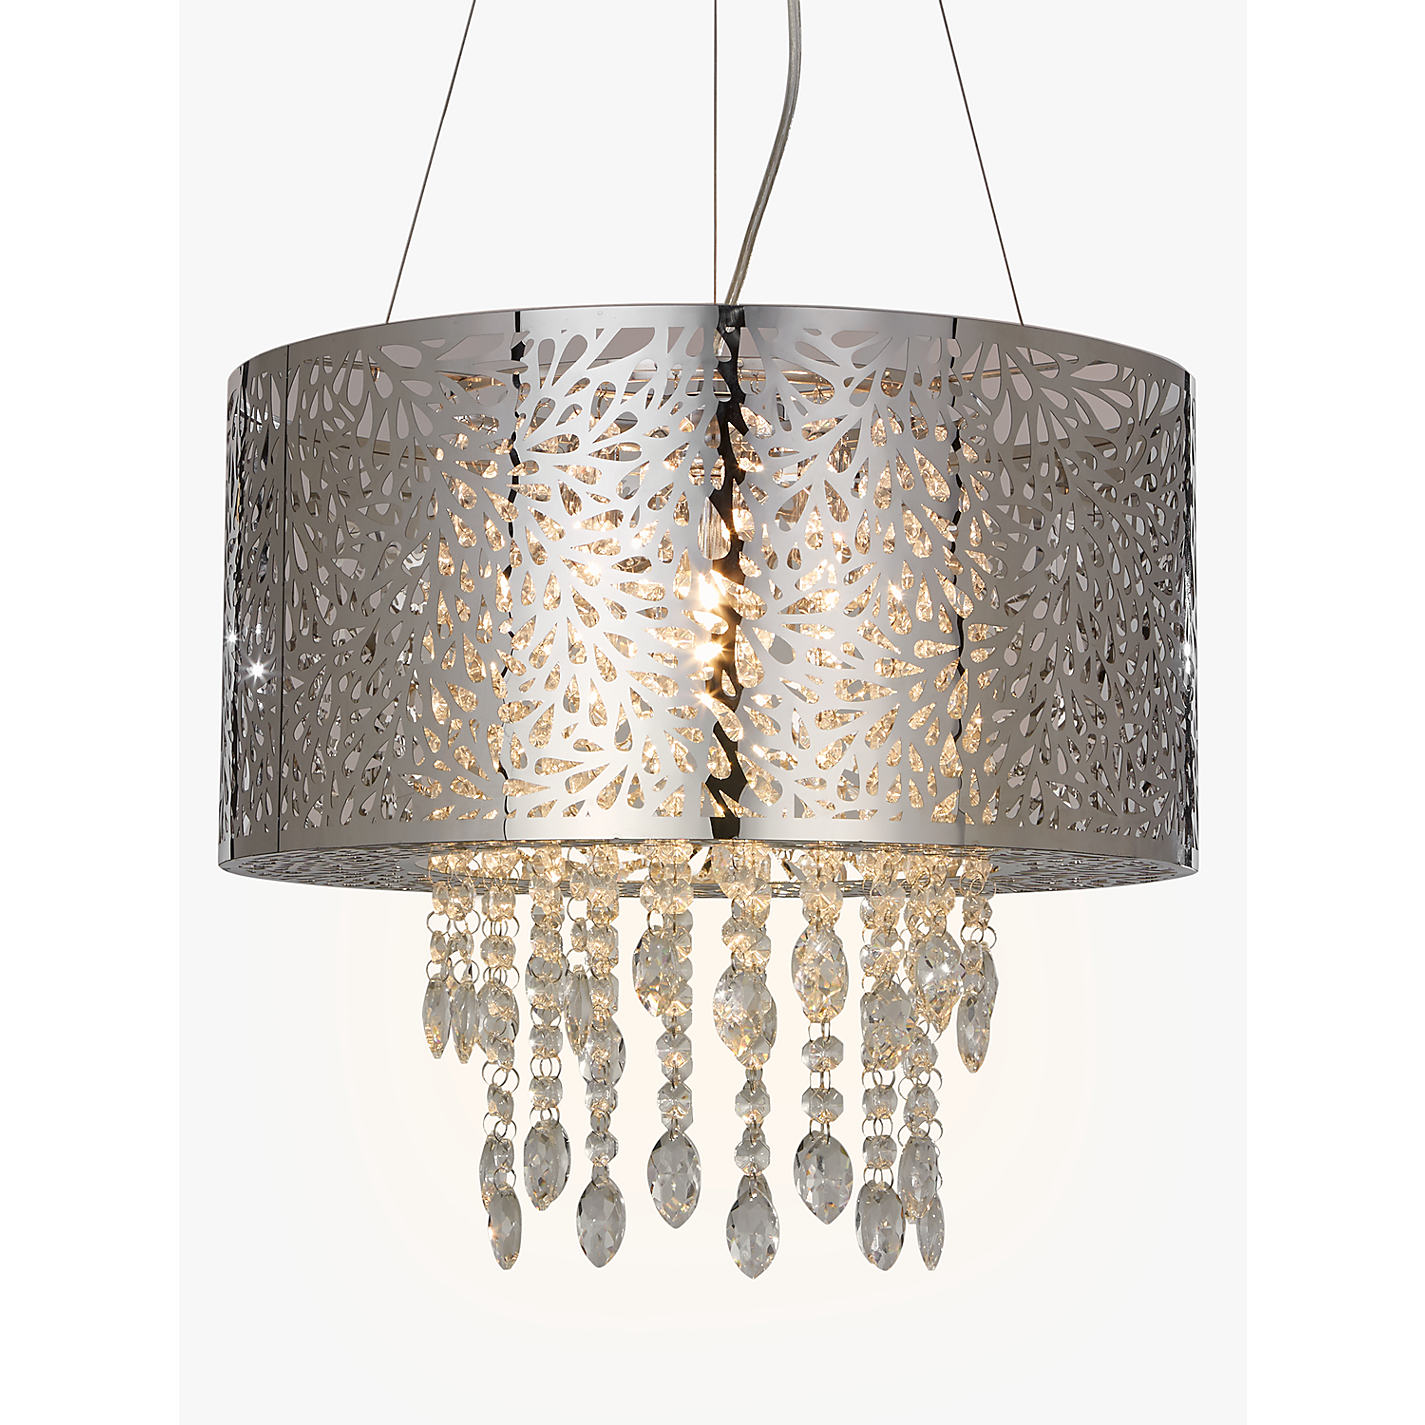 Buy john lewis destiny crystal fretwork pendant ceiling light buy john lewis destiny crystal fretwork pendant ceiling light silverclear online at johnlewis aloadofball Gallery